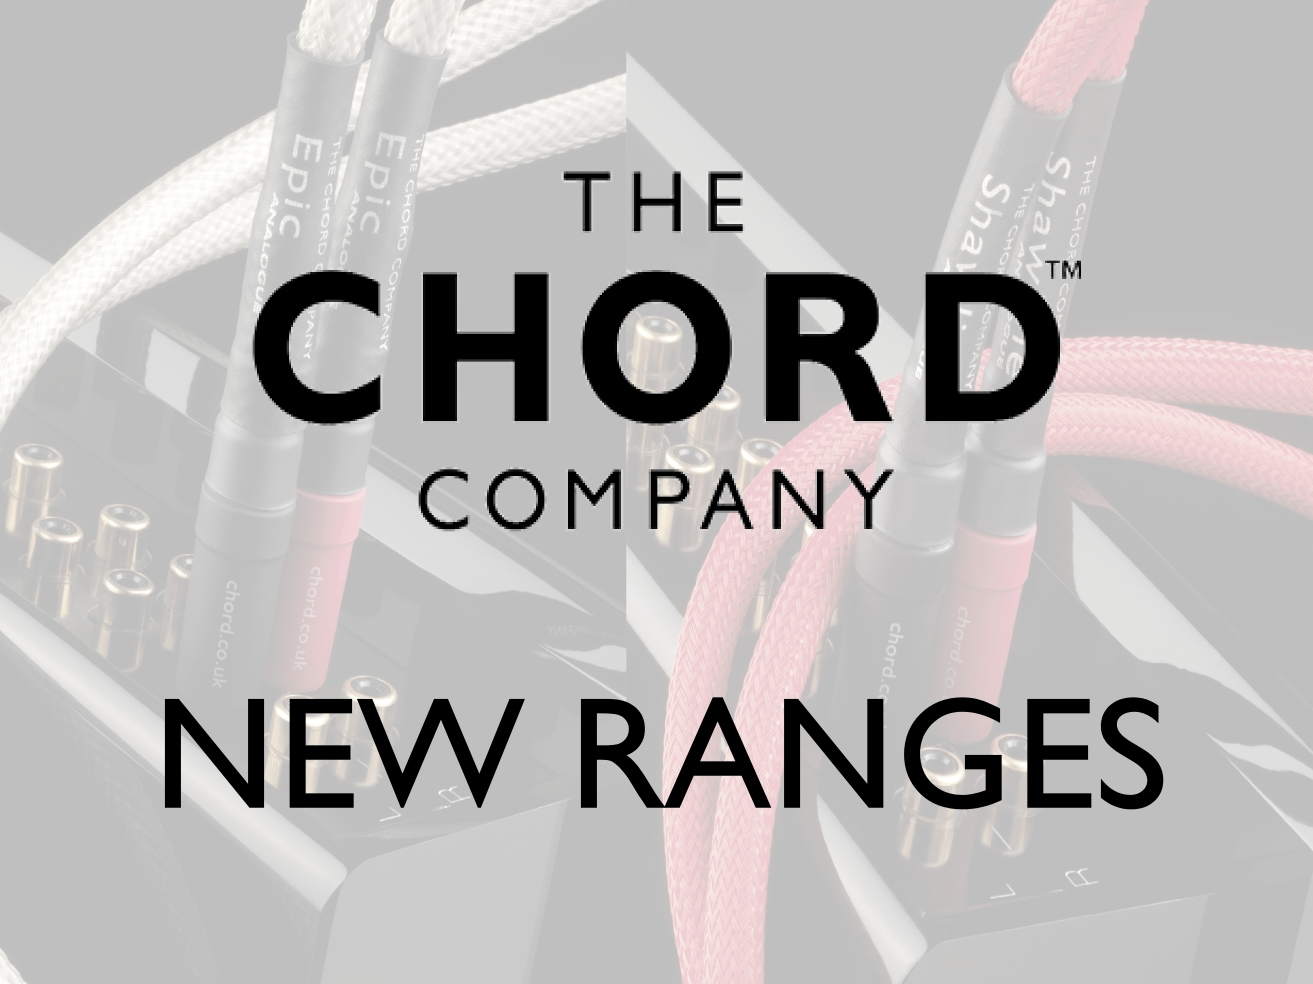 Chord Company New Range of Cables for 2016 Blog Header